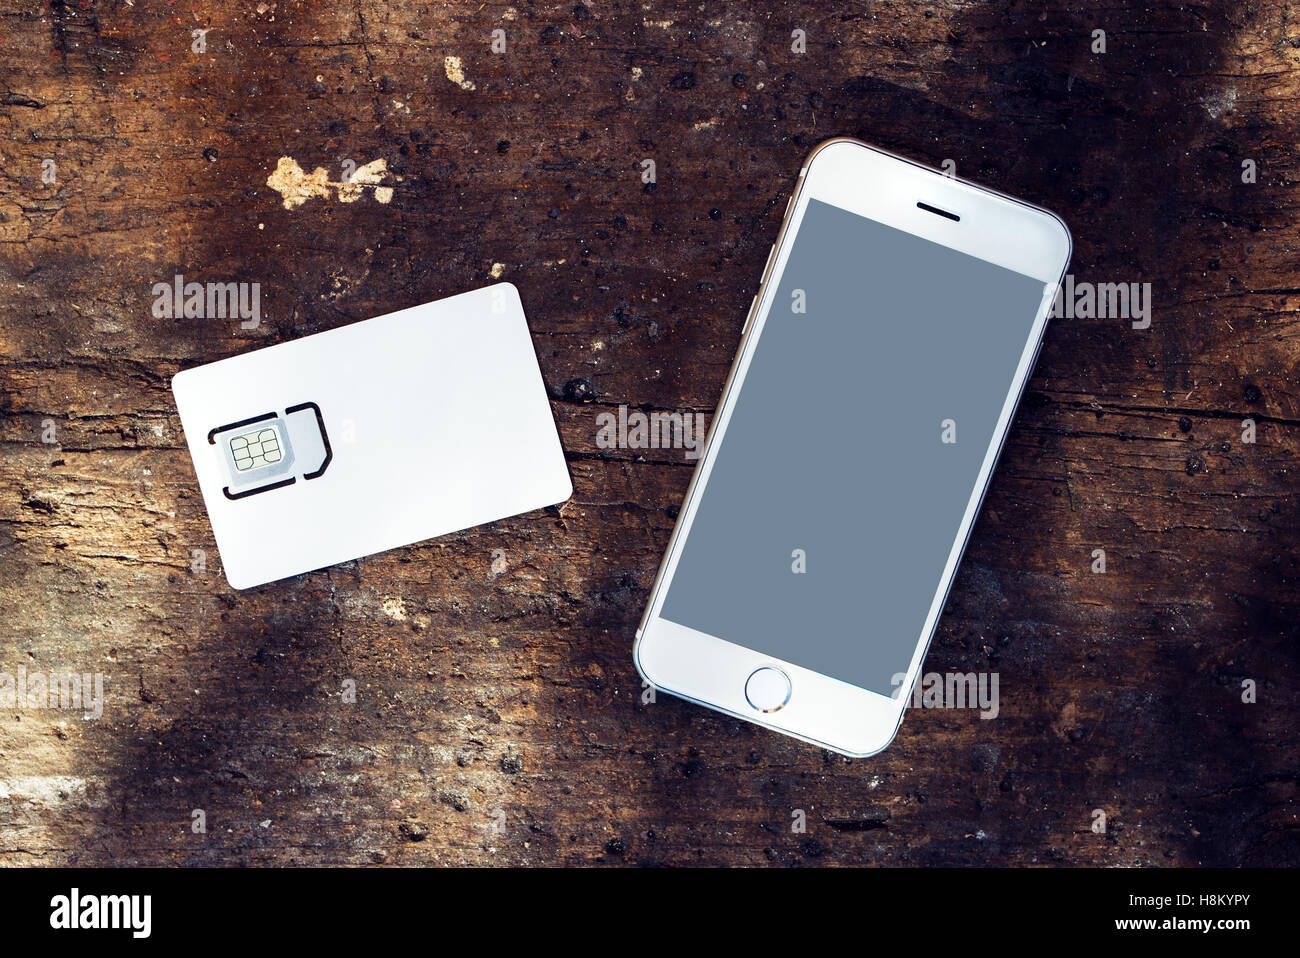 Smartphone with blank screen and mobile phone gsm SIM card on the table, top view - Stock Image